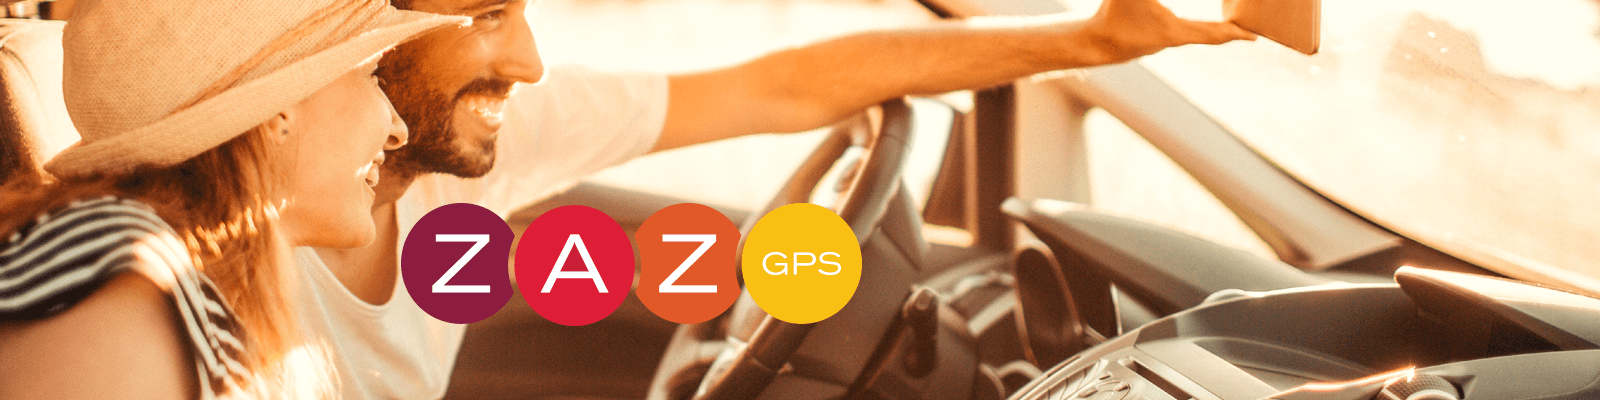 ZAZ GPS - Consumer Tracking System by Connected Dealer Services